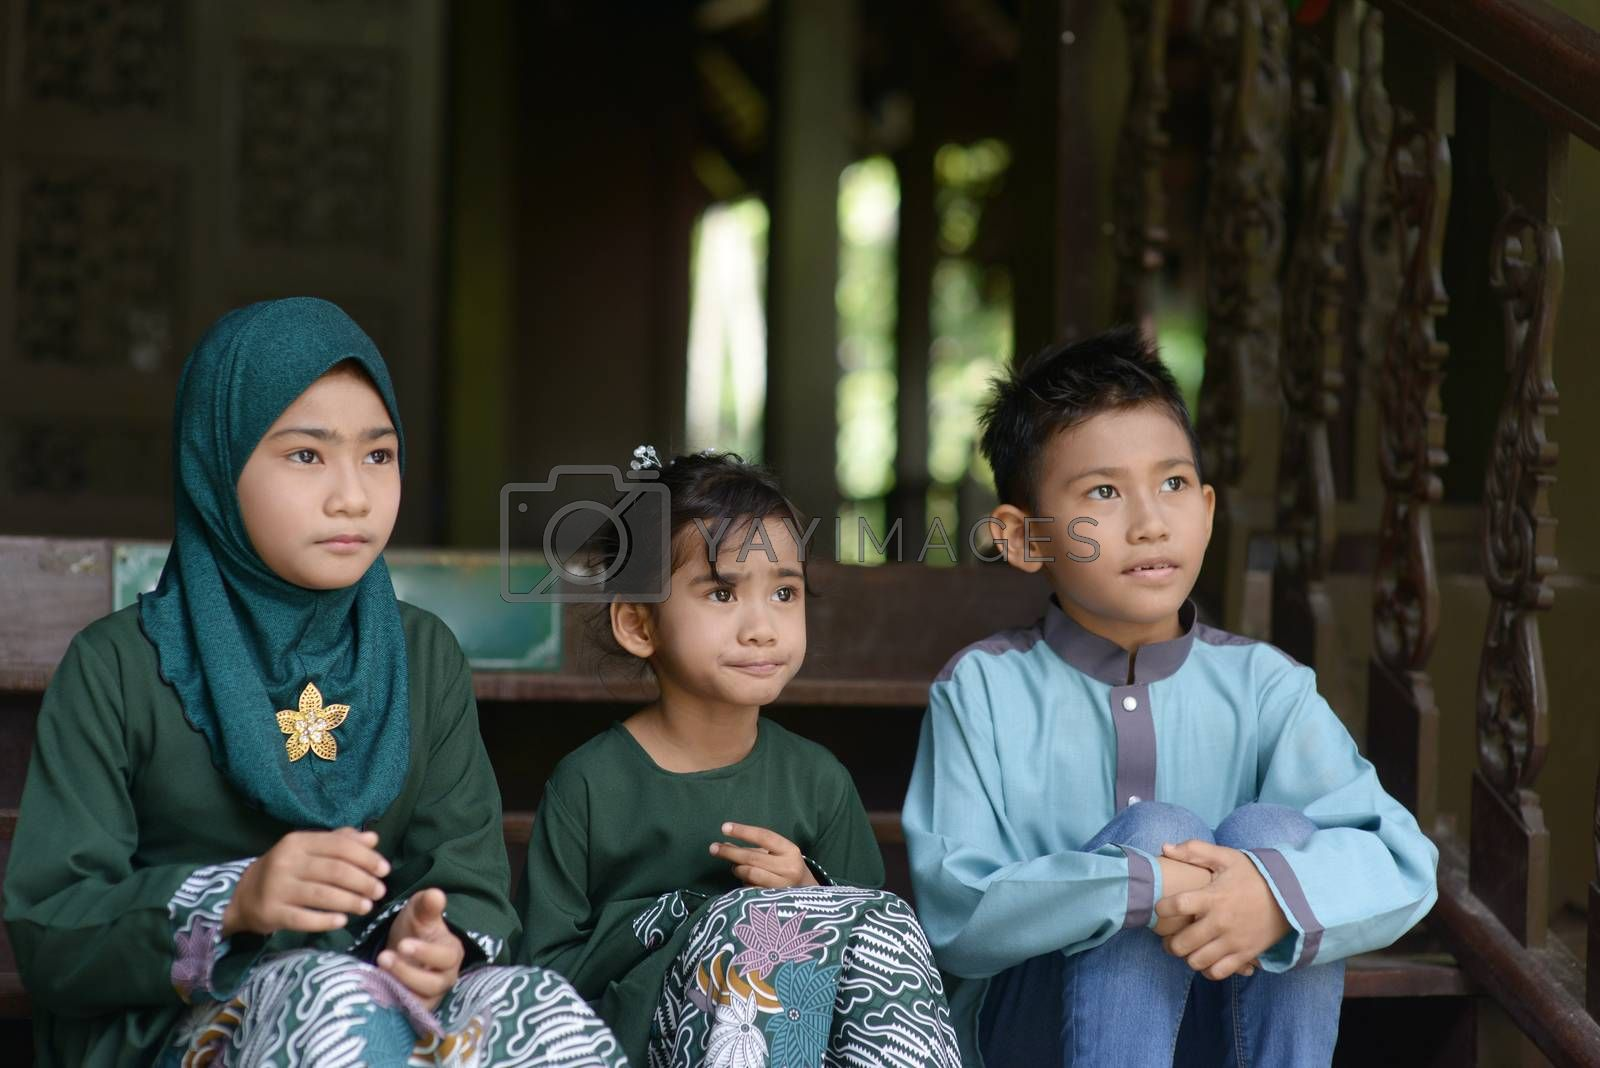 Muslim children sitting and looking away, Hari raya eid al-fitr concept.